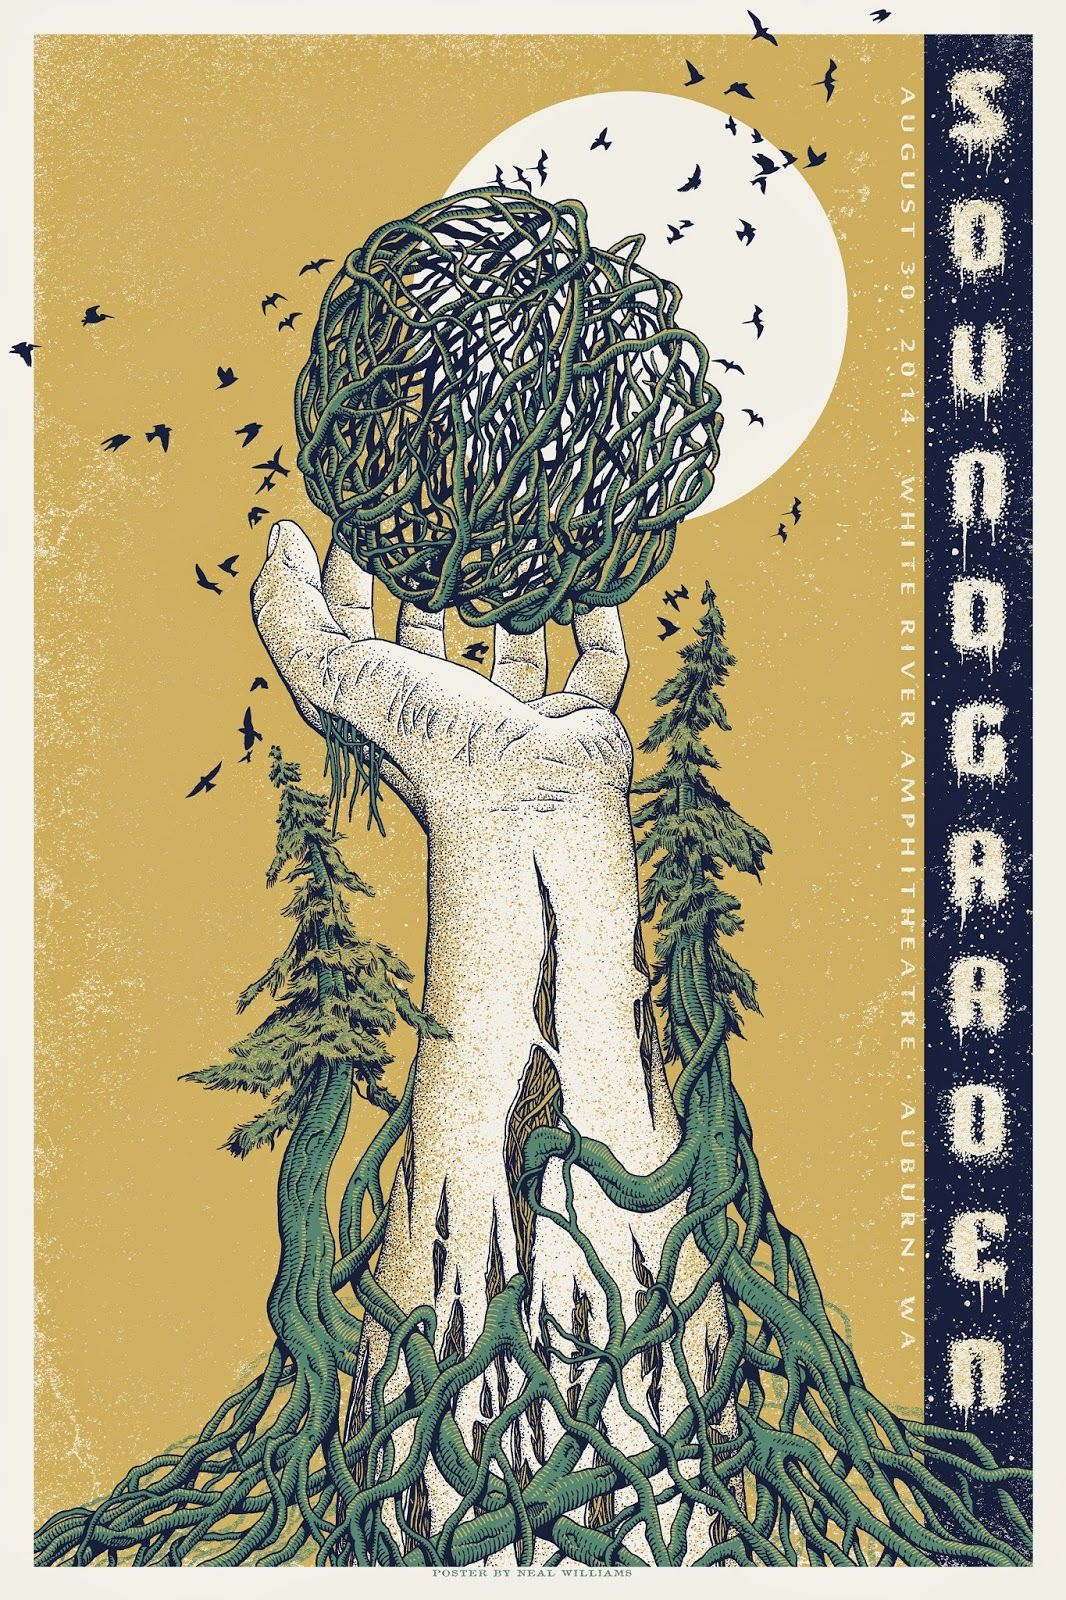 Soundgarden Neal Williams Posters & Ray LaMontagne plus Trampled By Turtles Release Details